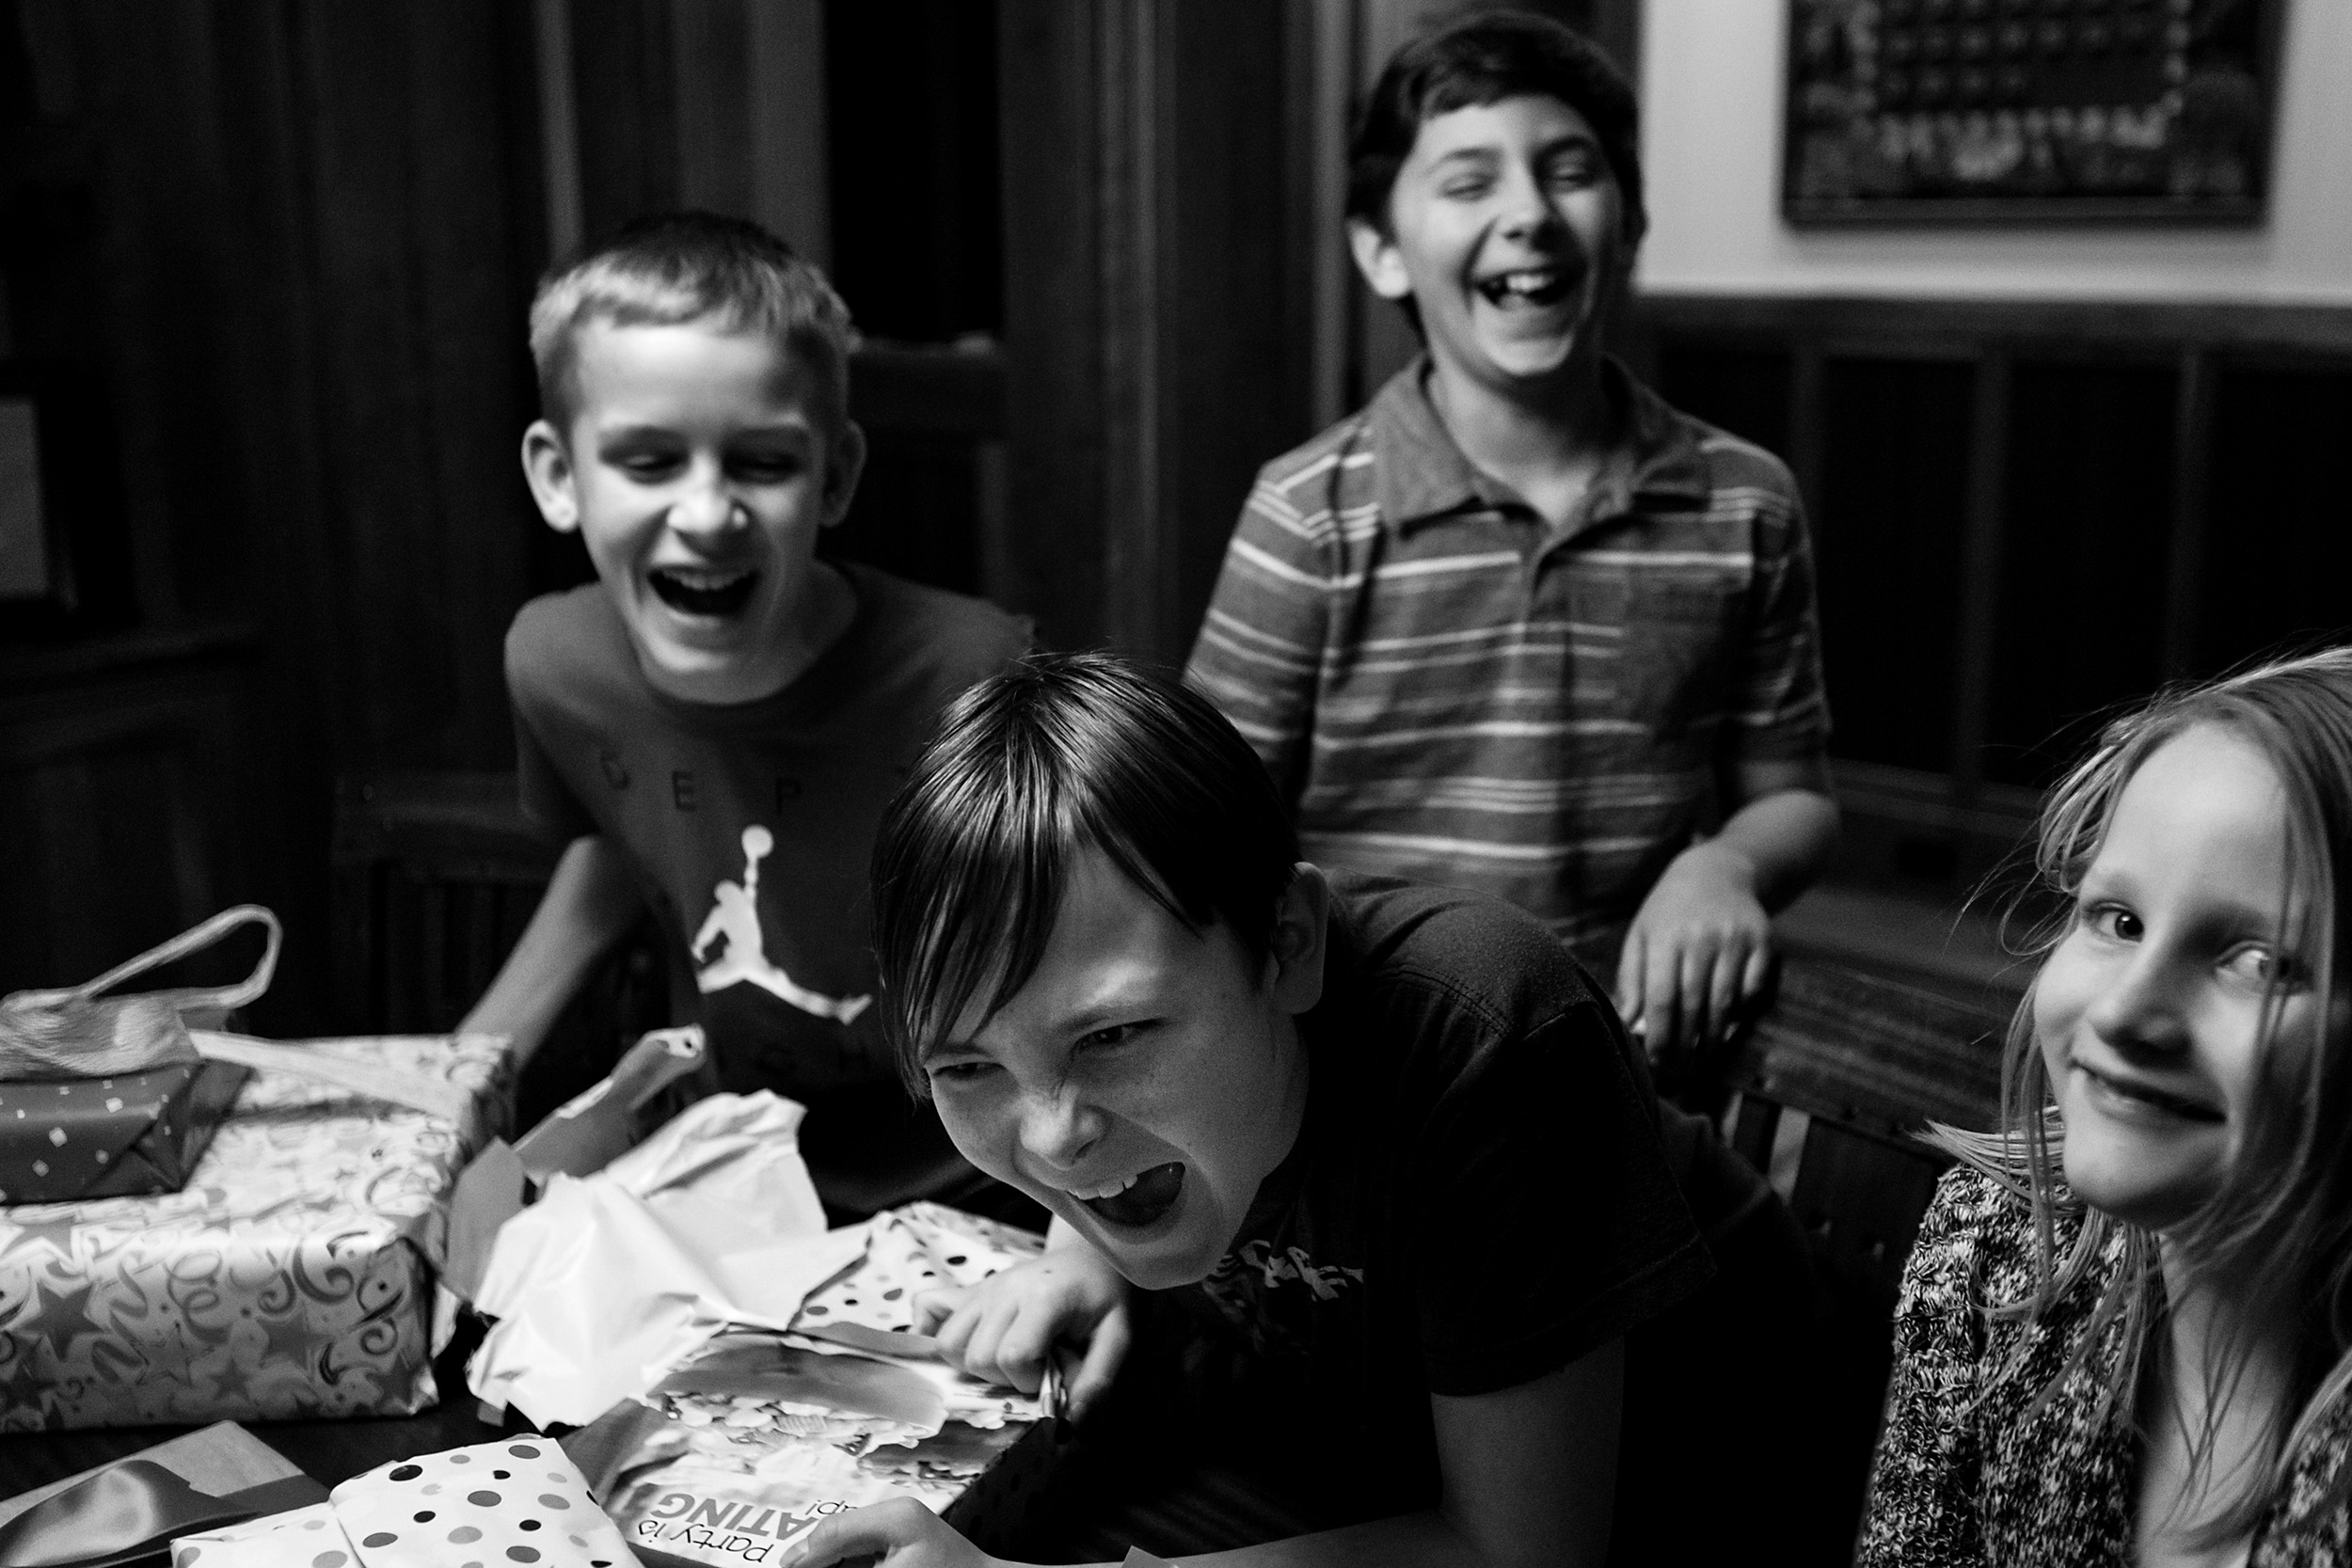 boy laughs hard with friends surrounding him Portland, OR